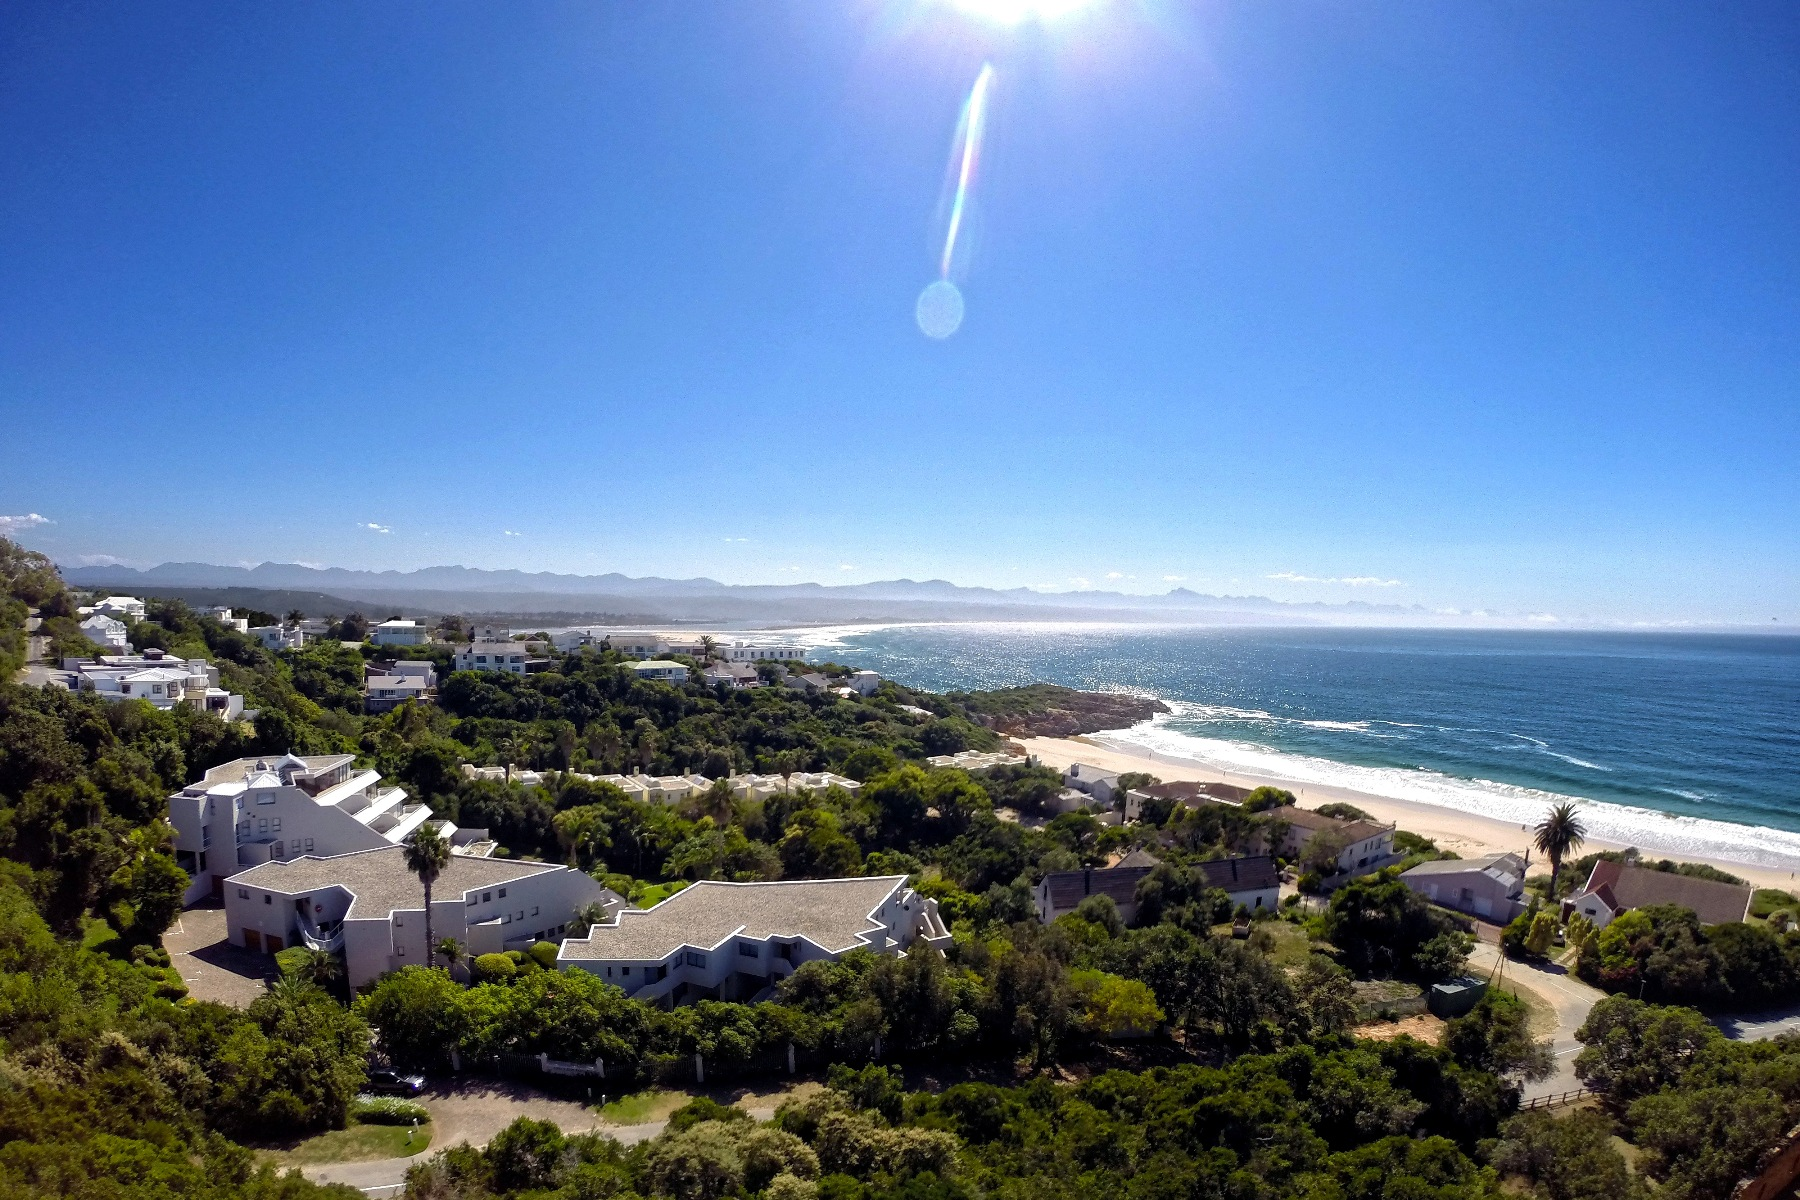 Apartment for Sale at Beach Apartment Plettenberg Bay, Western Cape 6600 South Africa